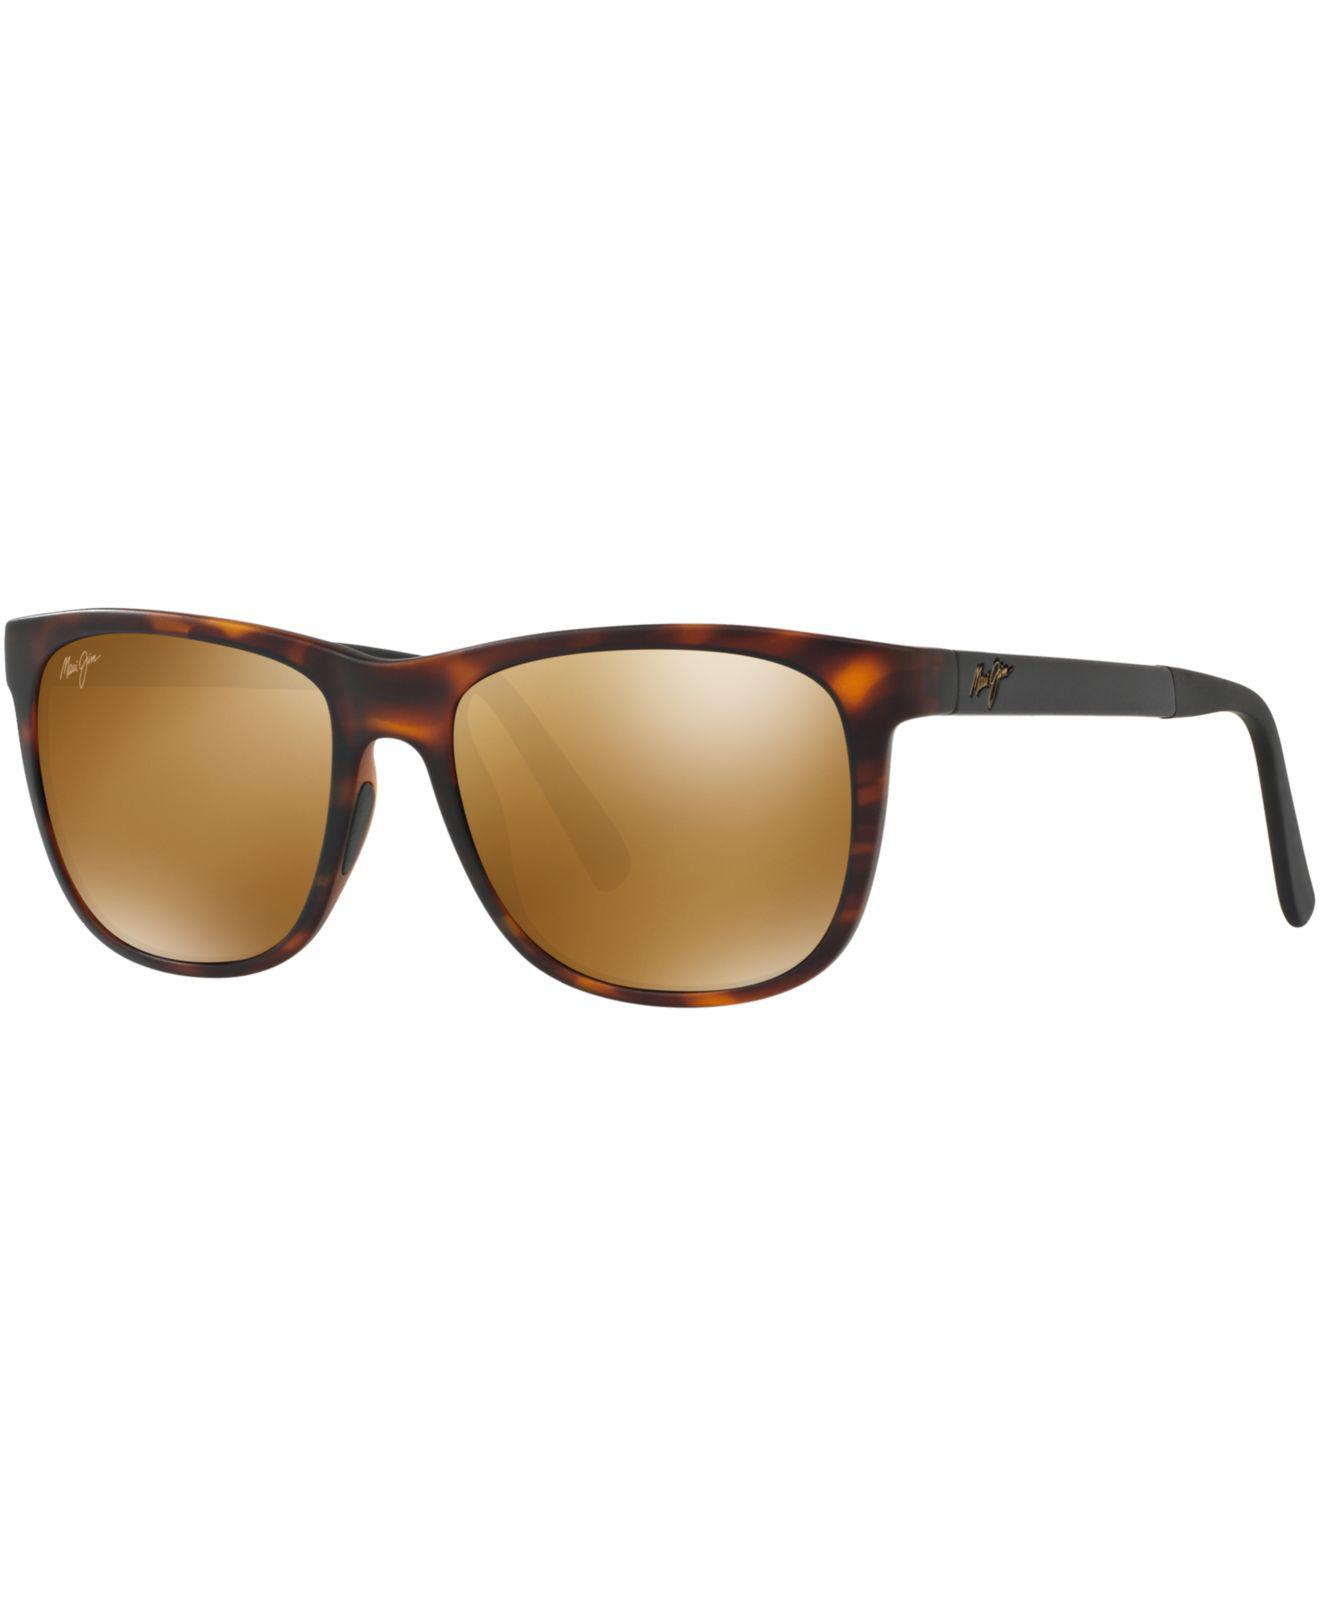 53433e97ab7 Oakley Twoface Brown Sugar Sunglasses - Shabooms